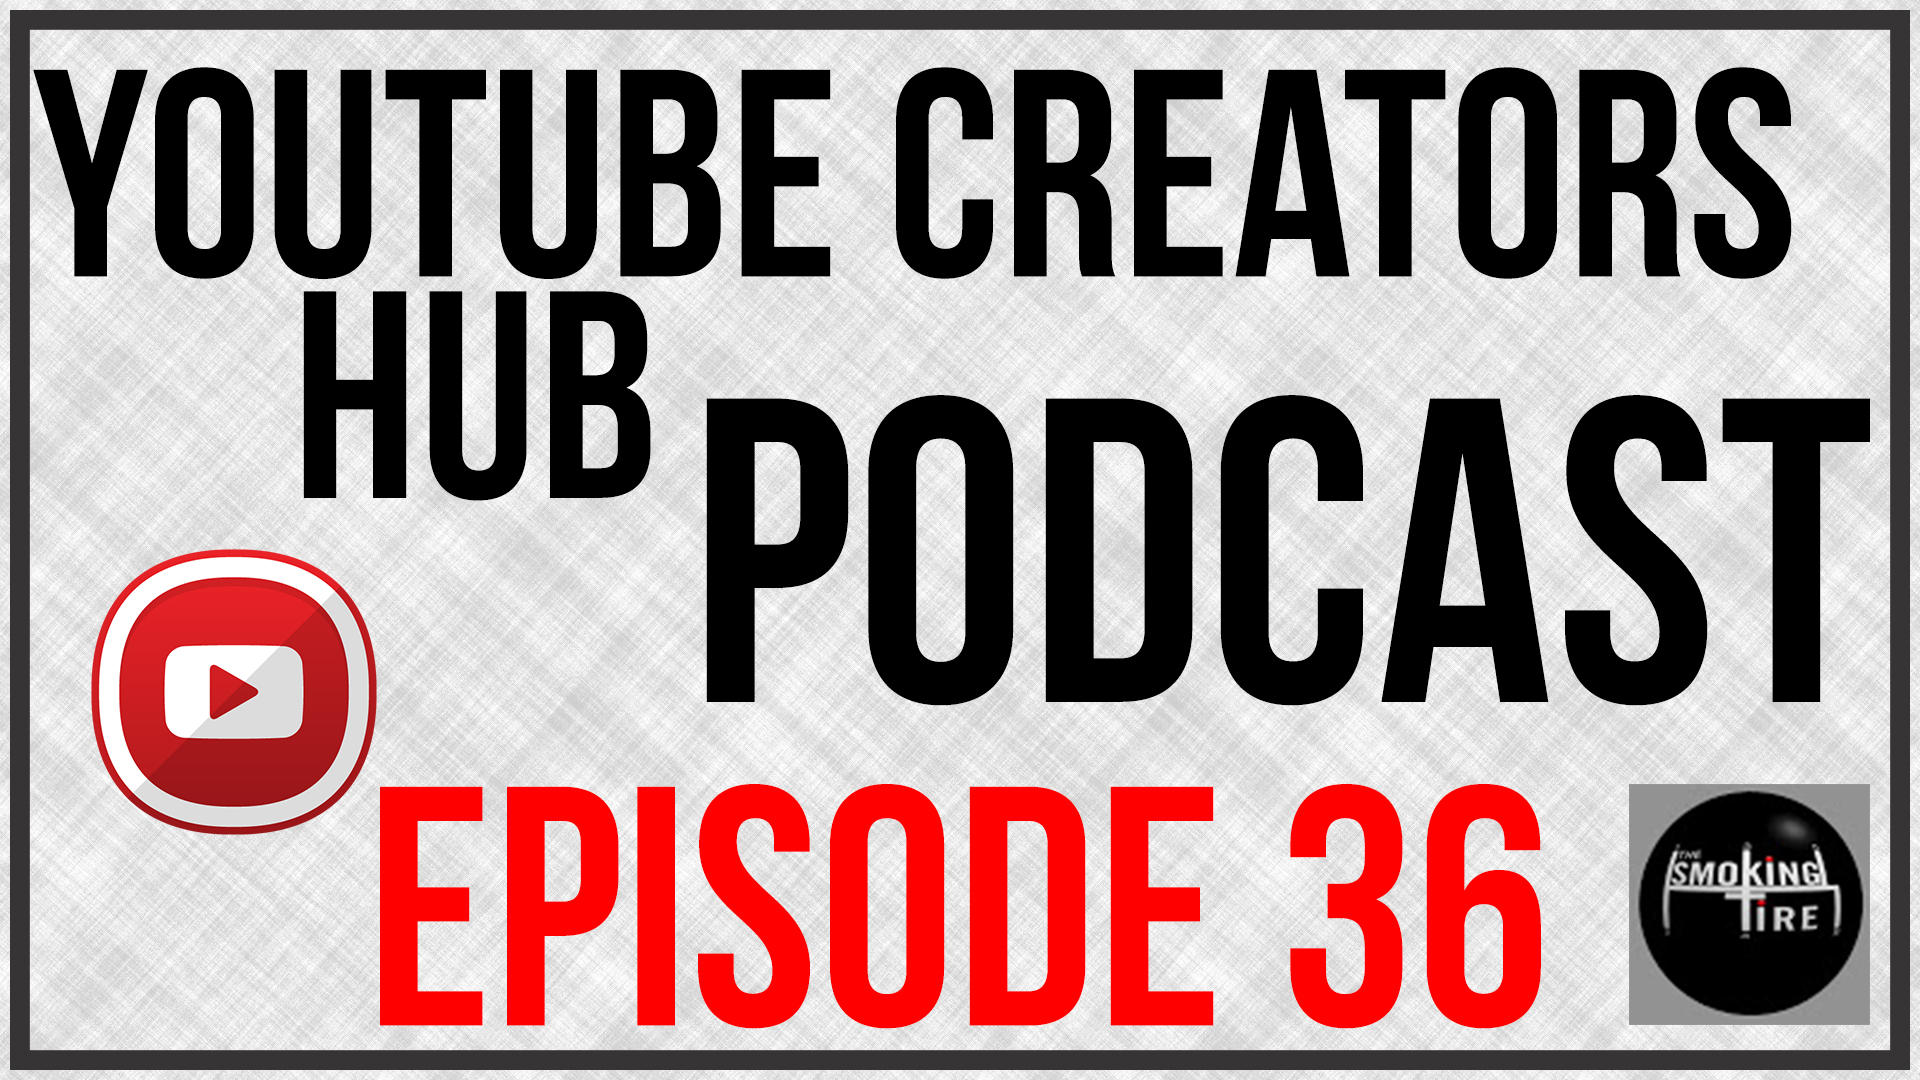 YouTube Creators Hub Podcast Episode 36